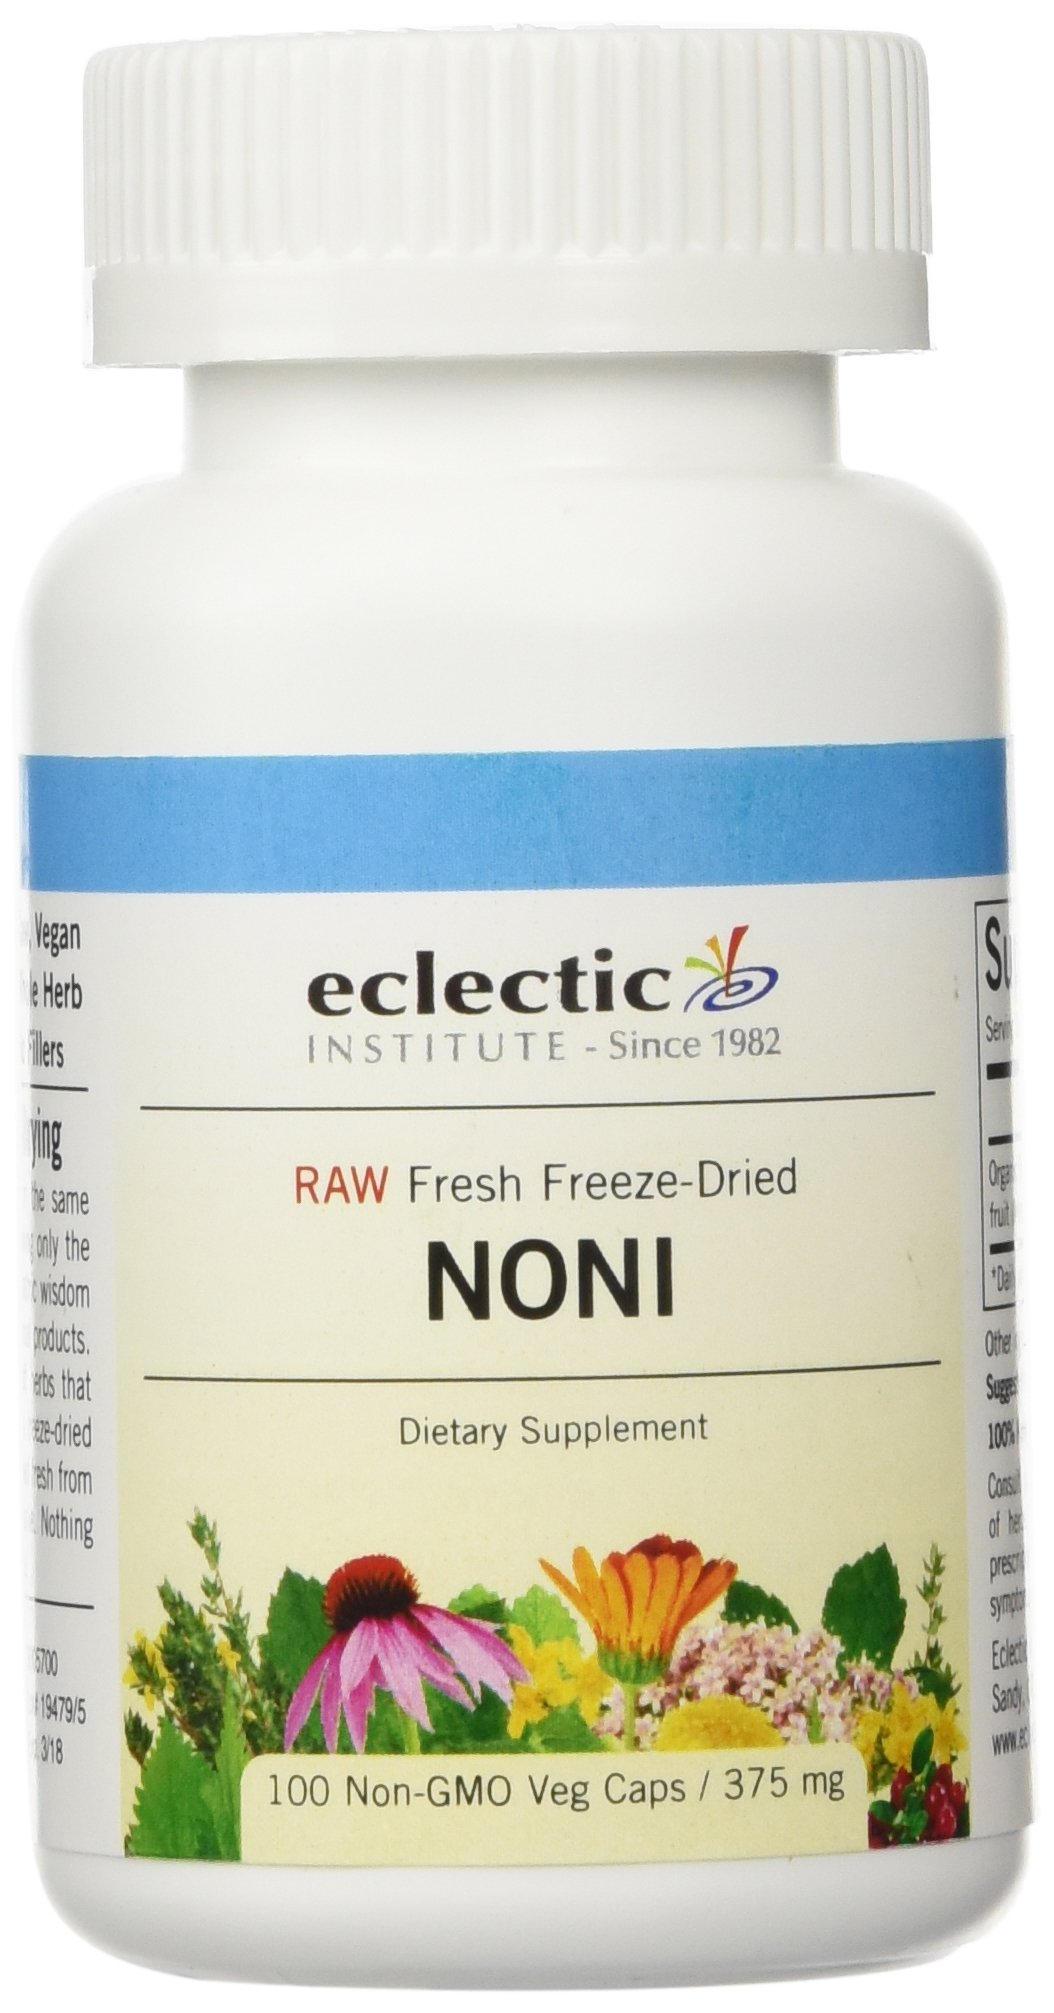 Eclectic Institute - Noni Freeze-Dried, 375 mg, 100 capsules by Eclectic Institute